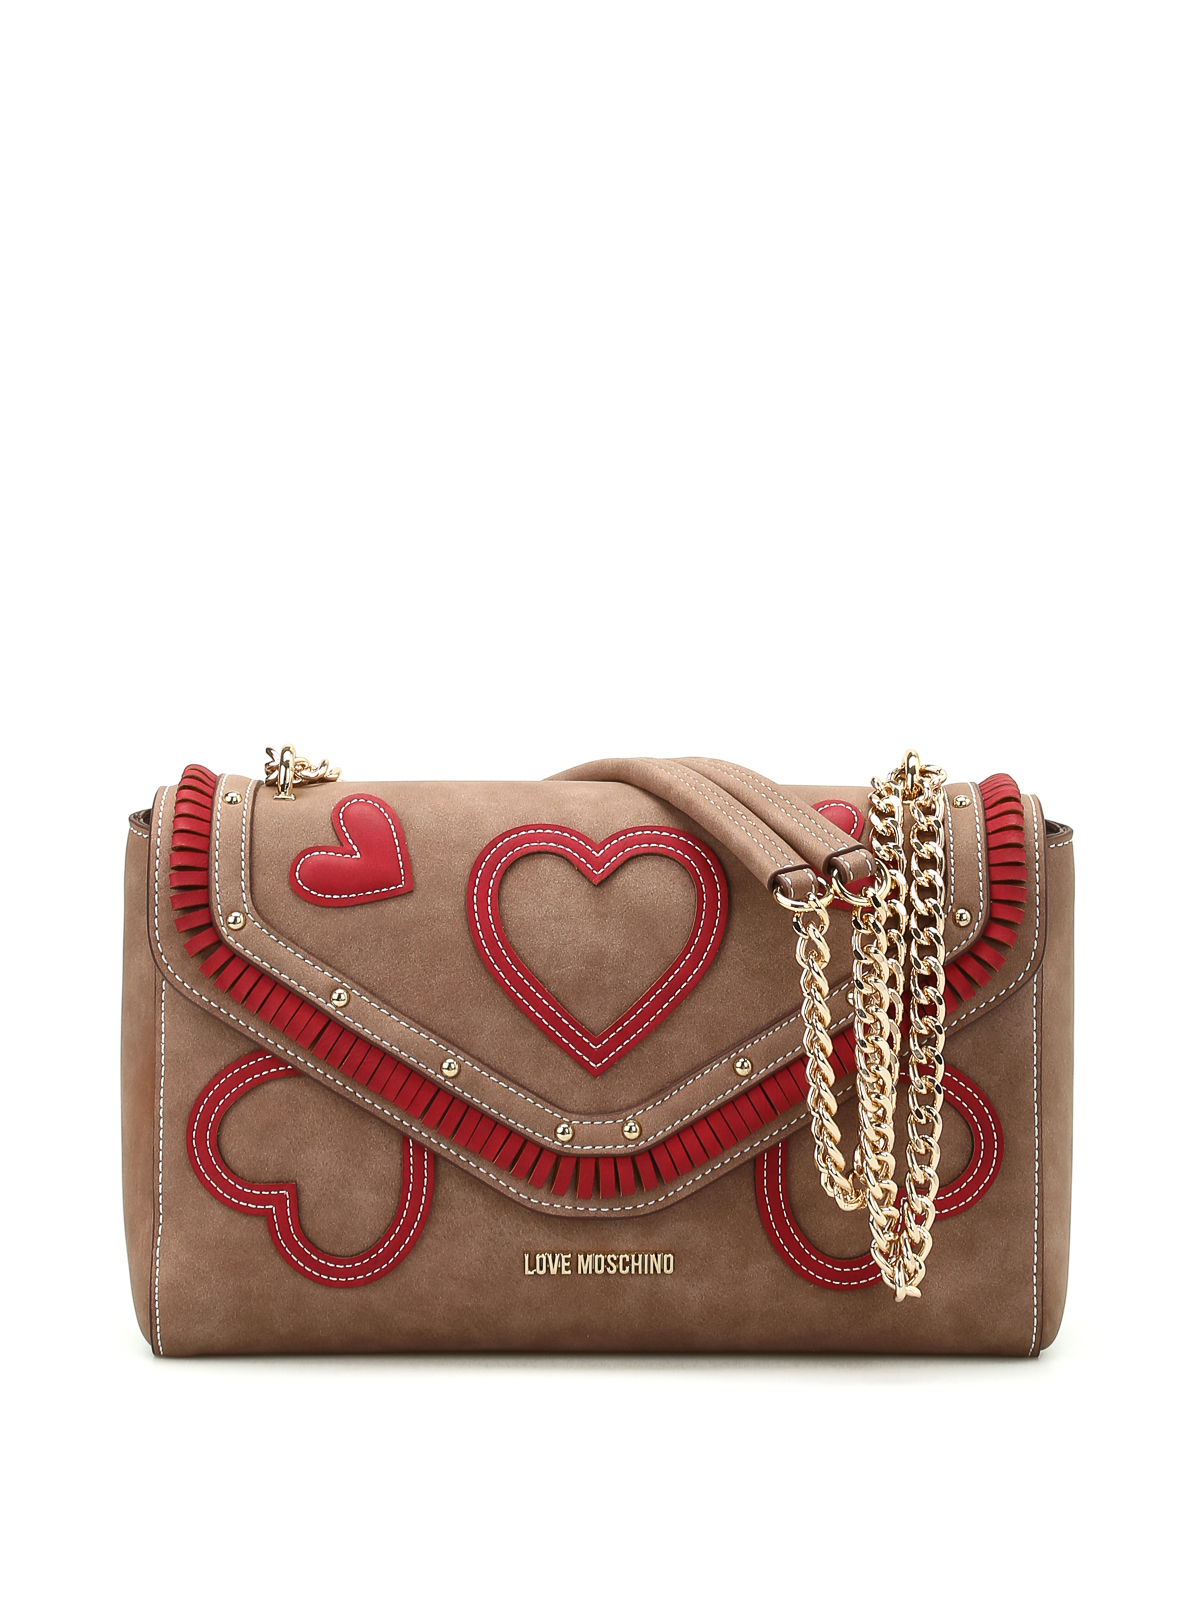 nubuck bag with hearts by love moschino shoulder bags. Black Bedroom Furniture Sets. Home Design Ideas